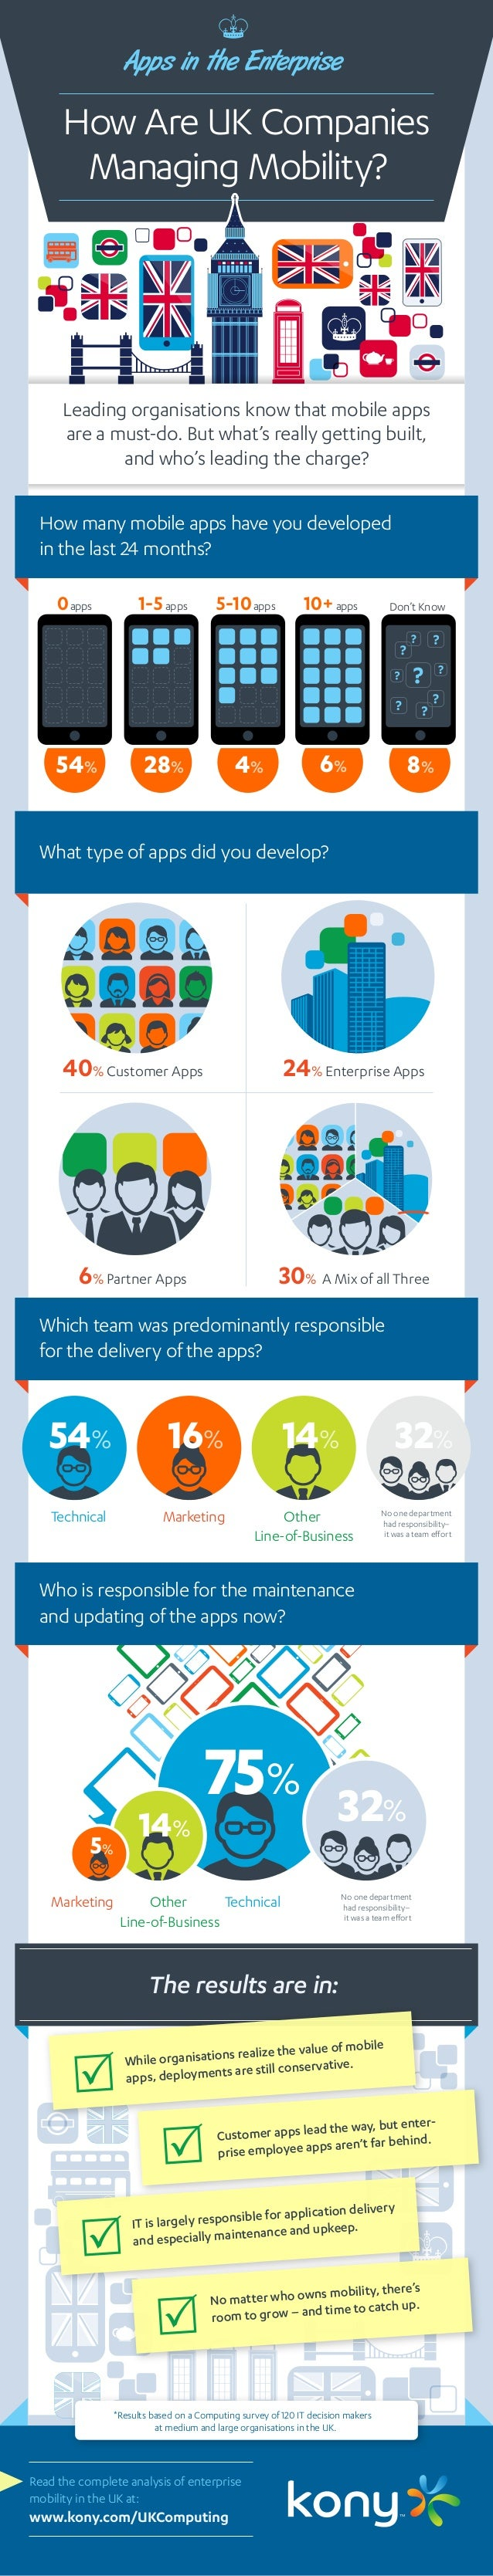 How Are UK Companies Managing Mobility? Apps in the Enterprise How many mobile apps have you developed in the last 24 mont...